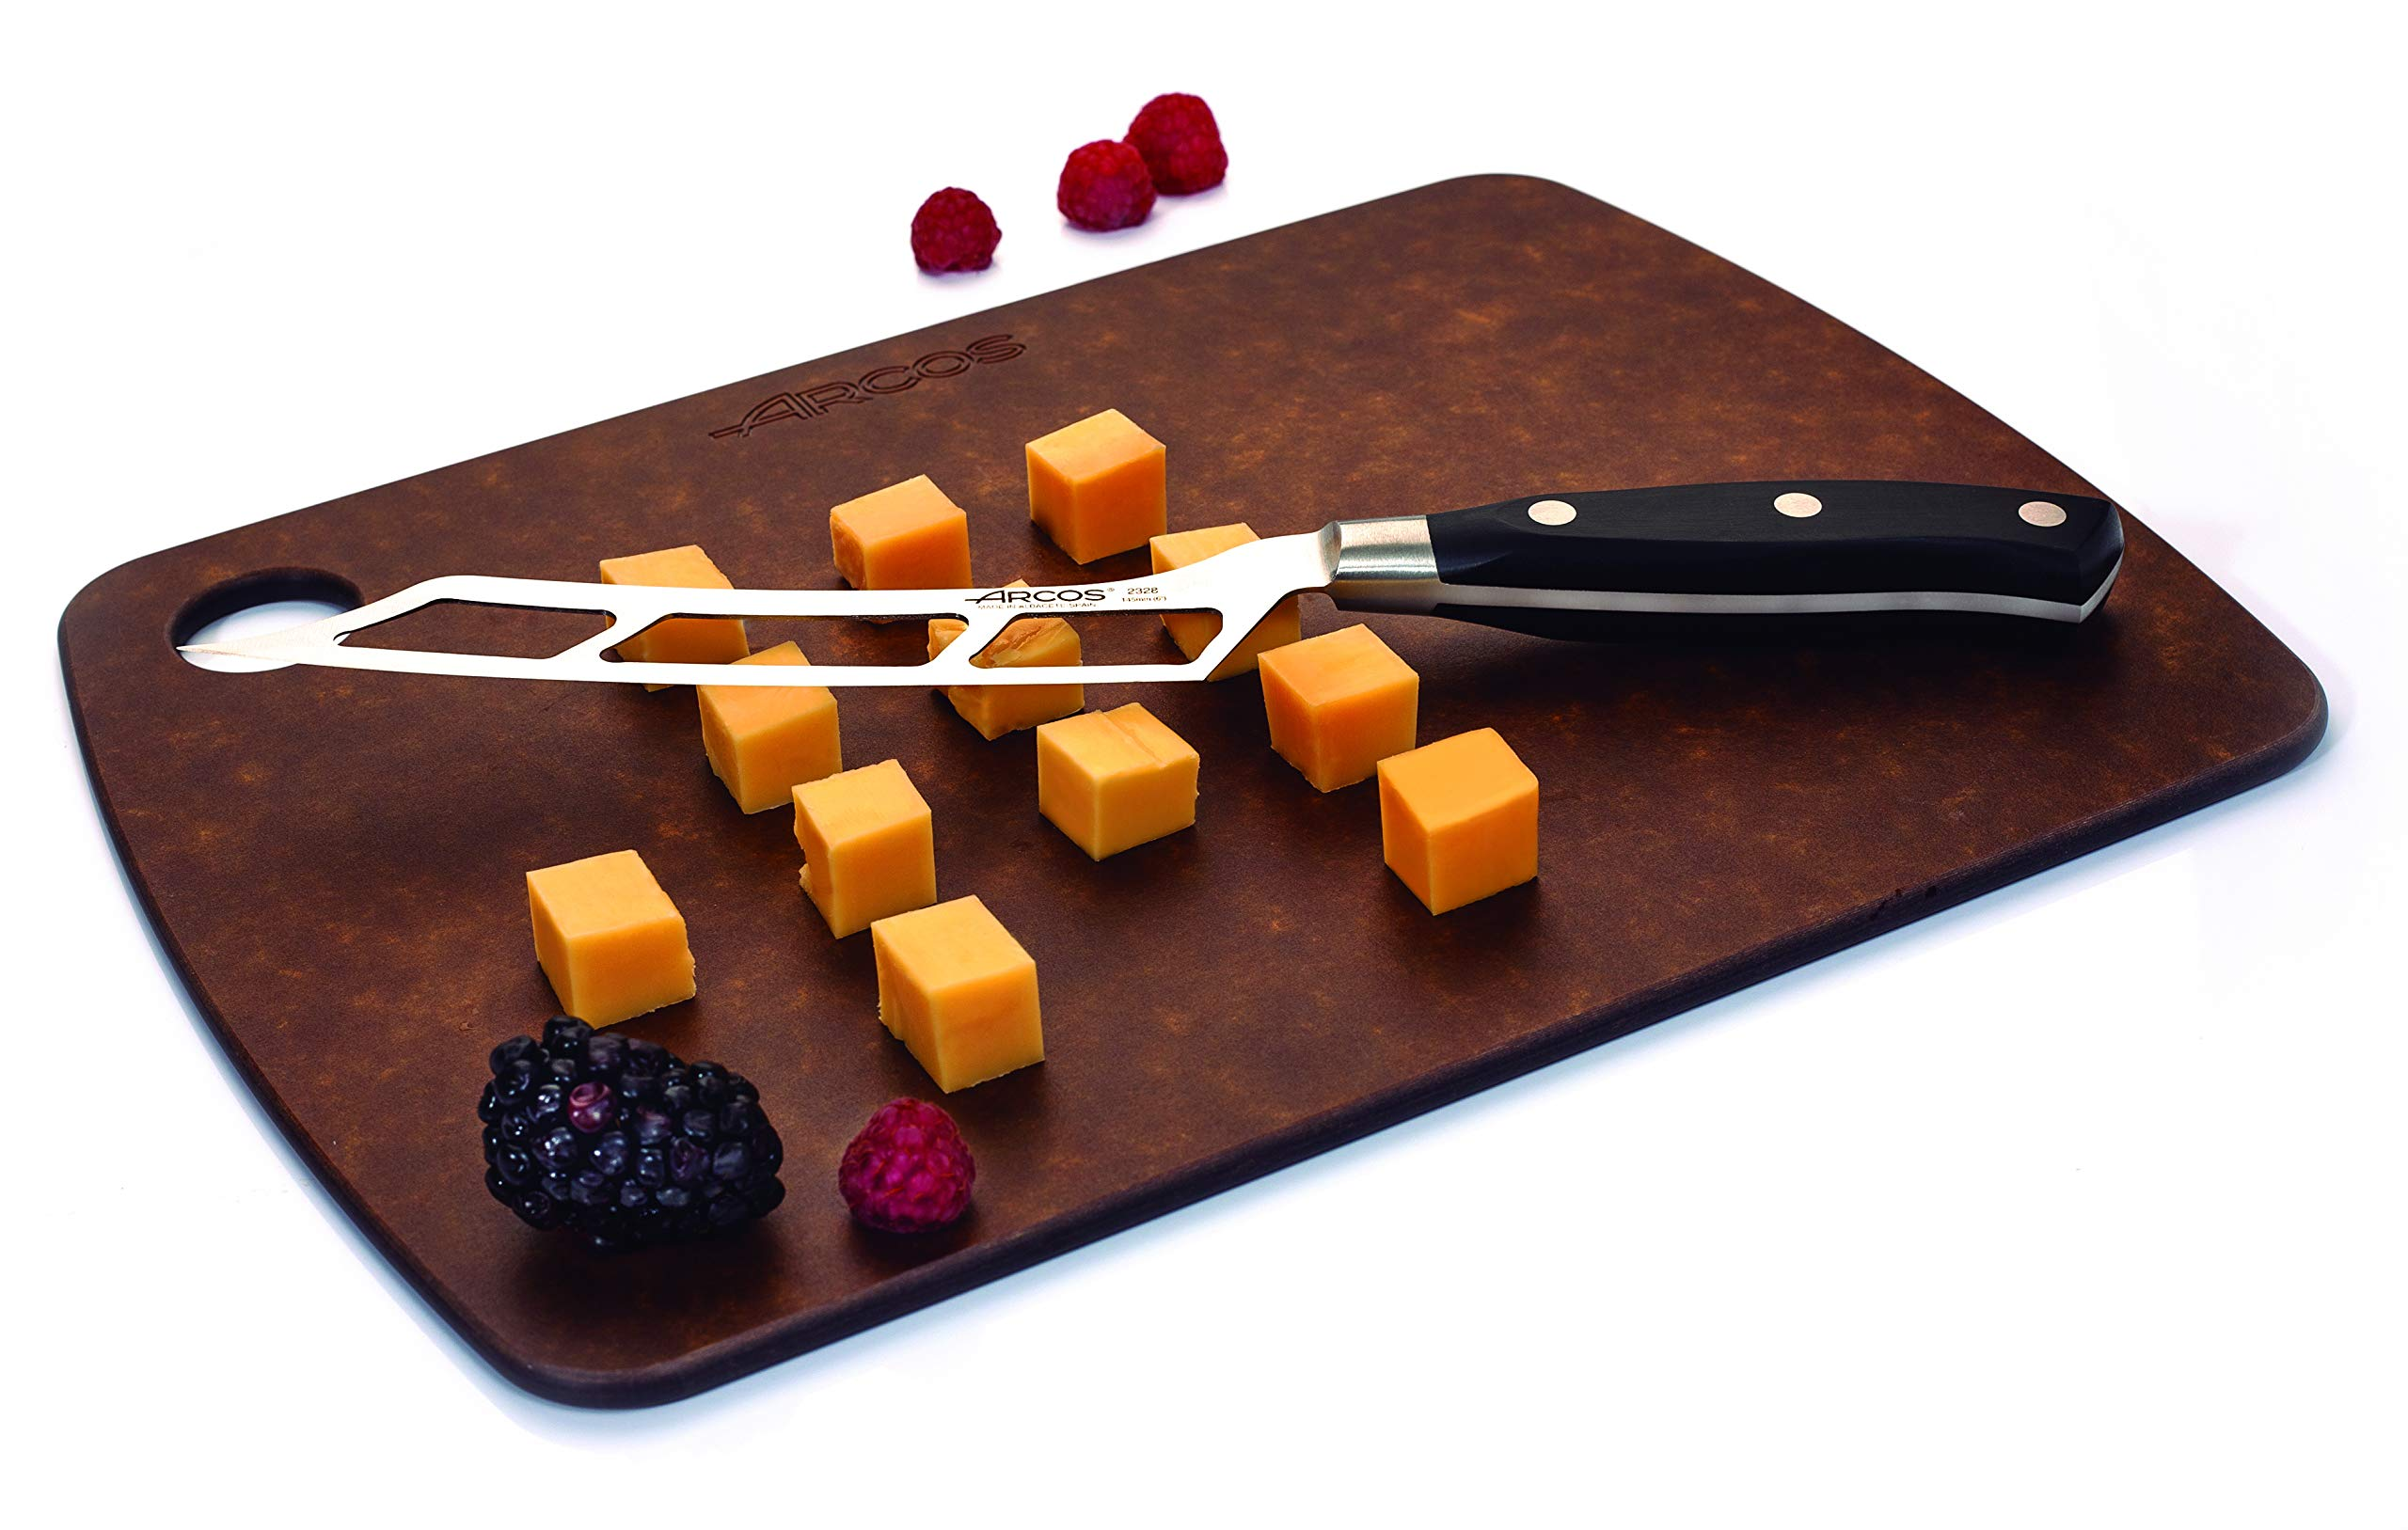 Arcos Forged Riviera 6 Inch 145 mm Cheese Knife by ARCOS (Image #2)